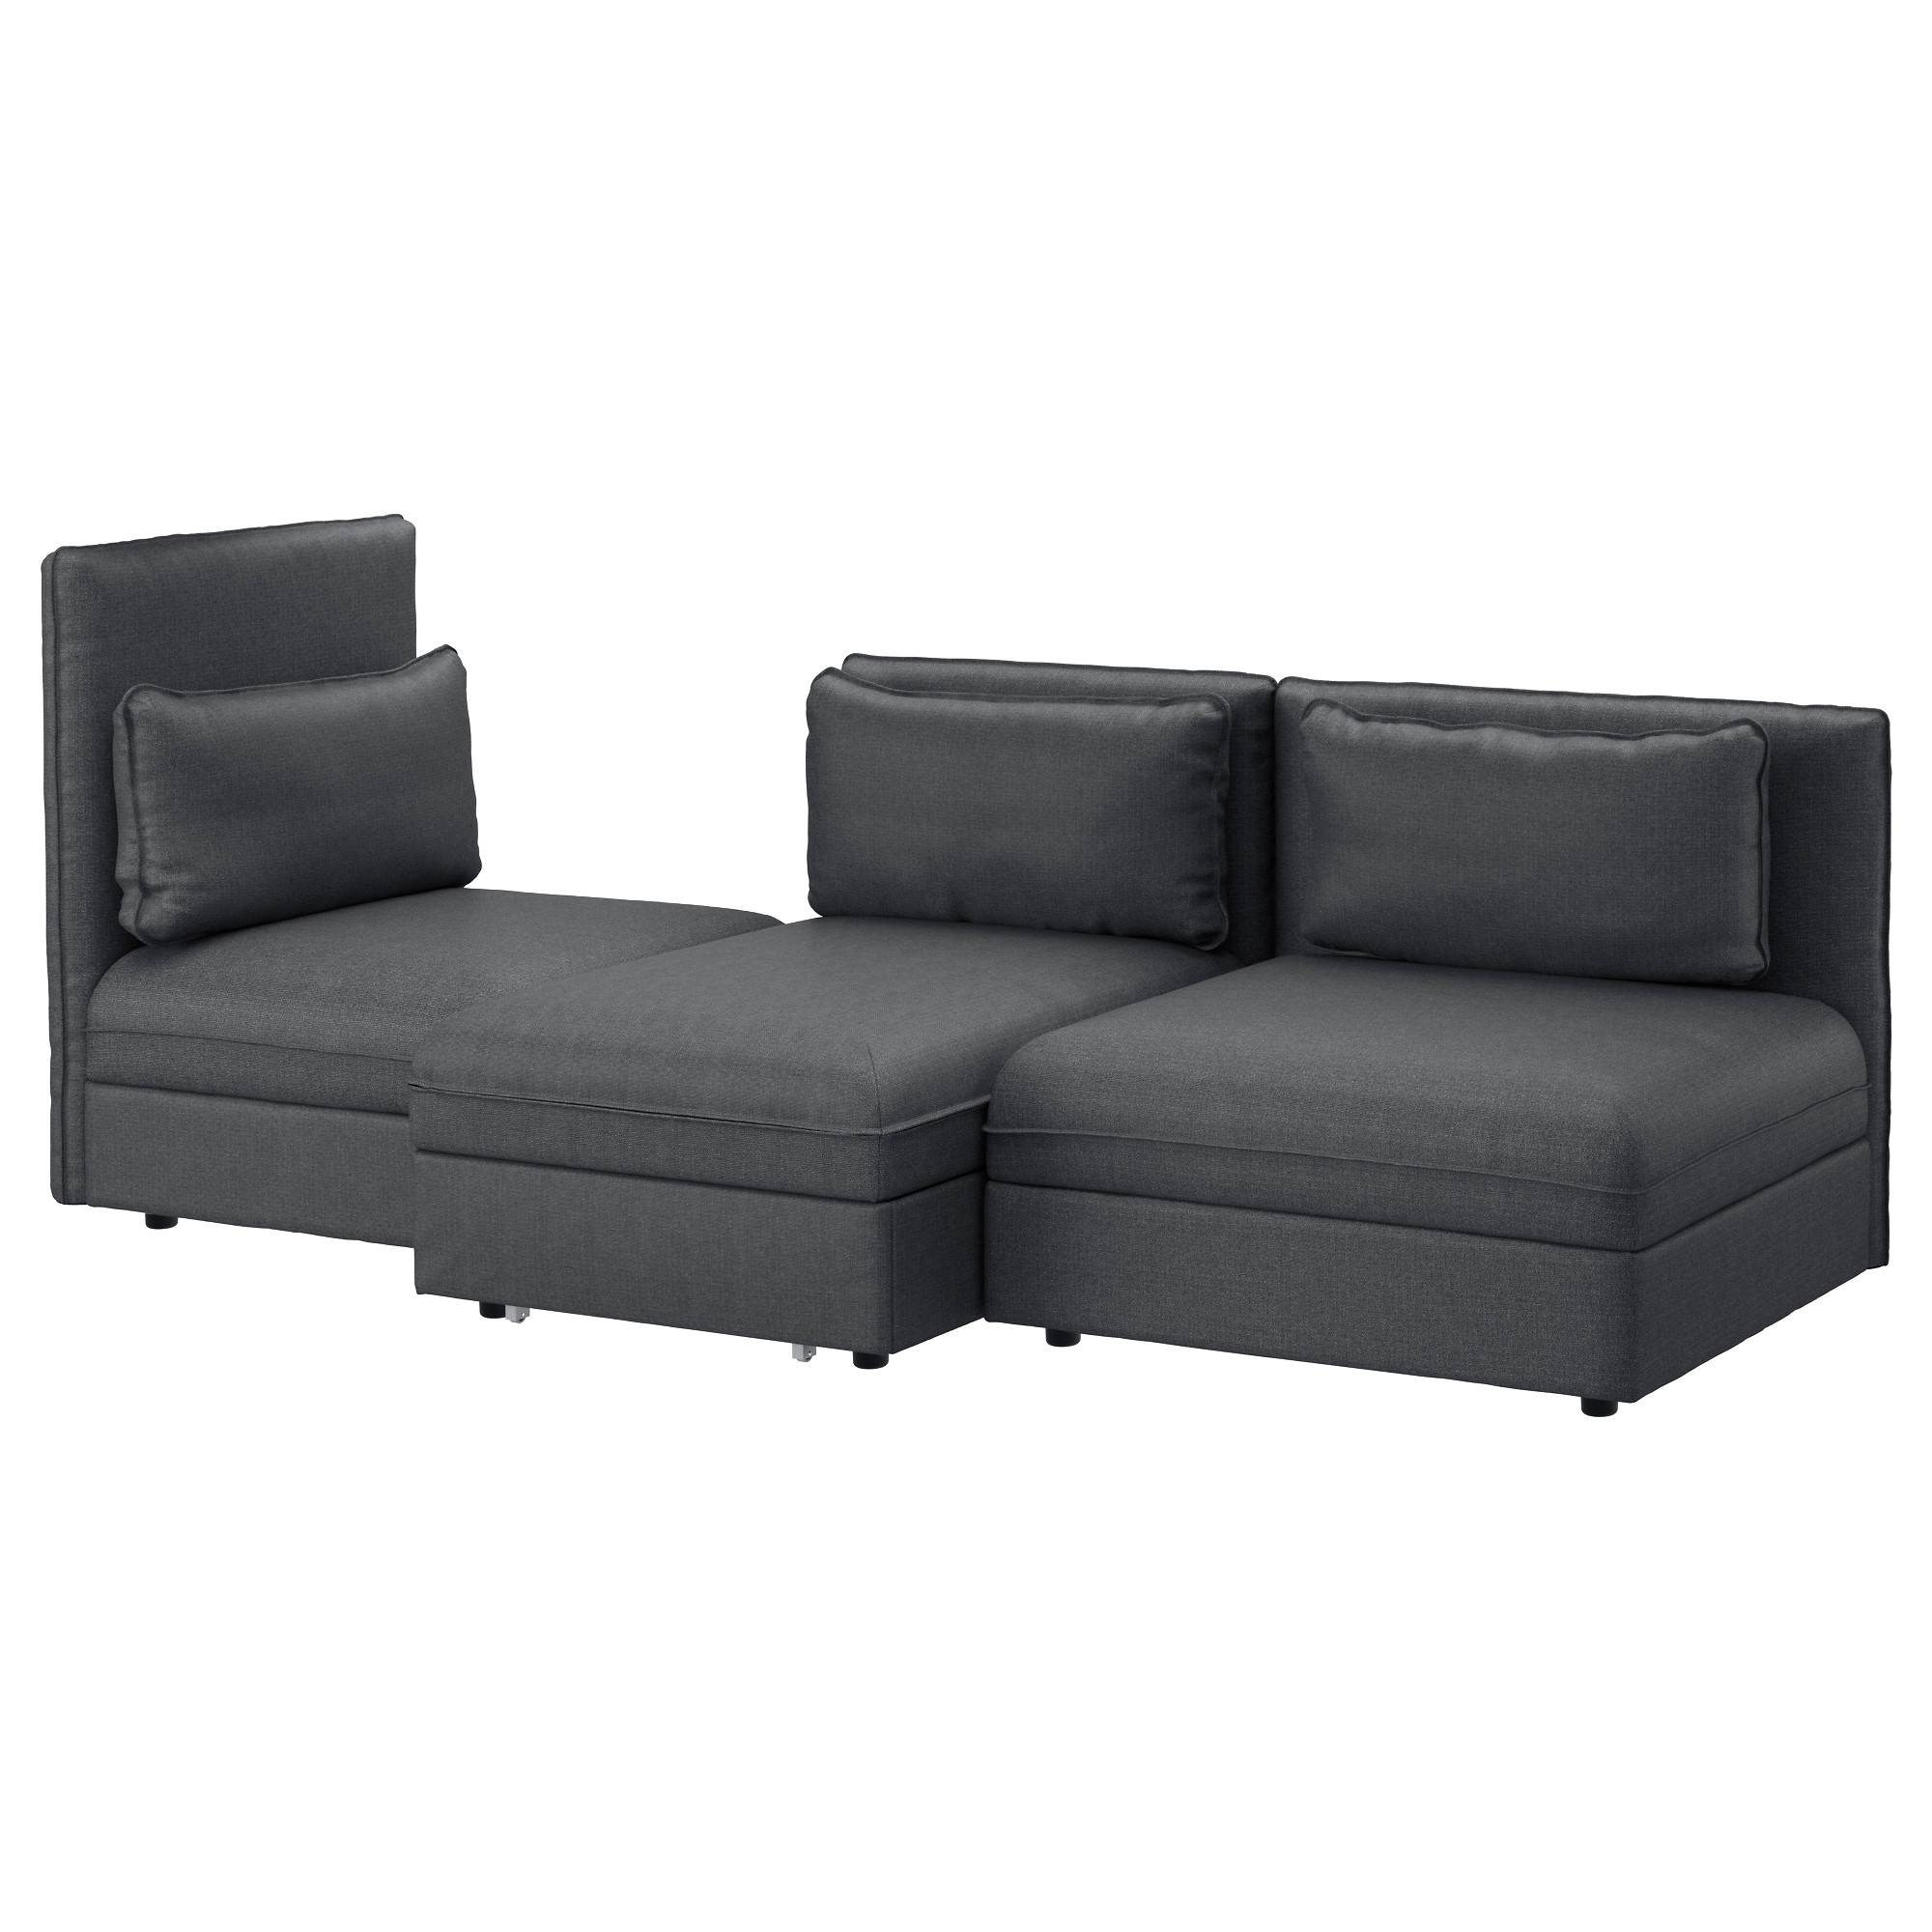 Furniture: Big Choice Of Styles And Colors Futon Beds Ikea For for Sofas With Beds (Image 7 of 30)